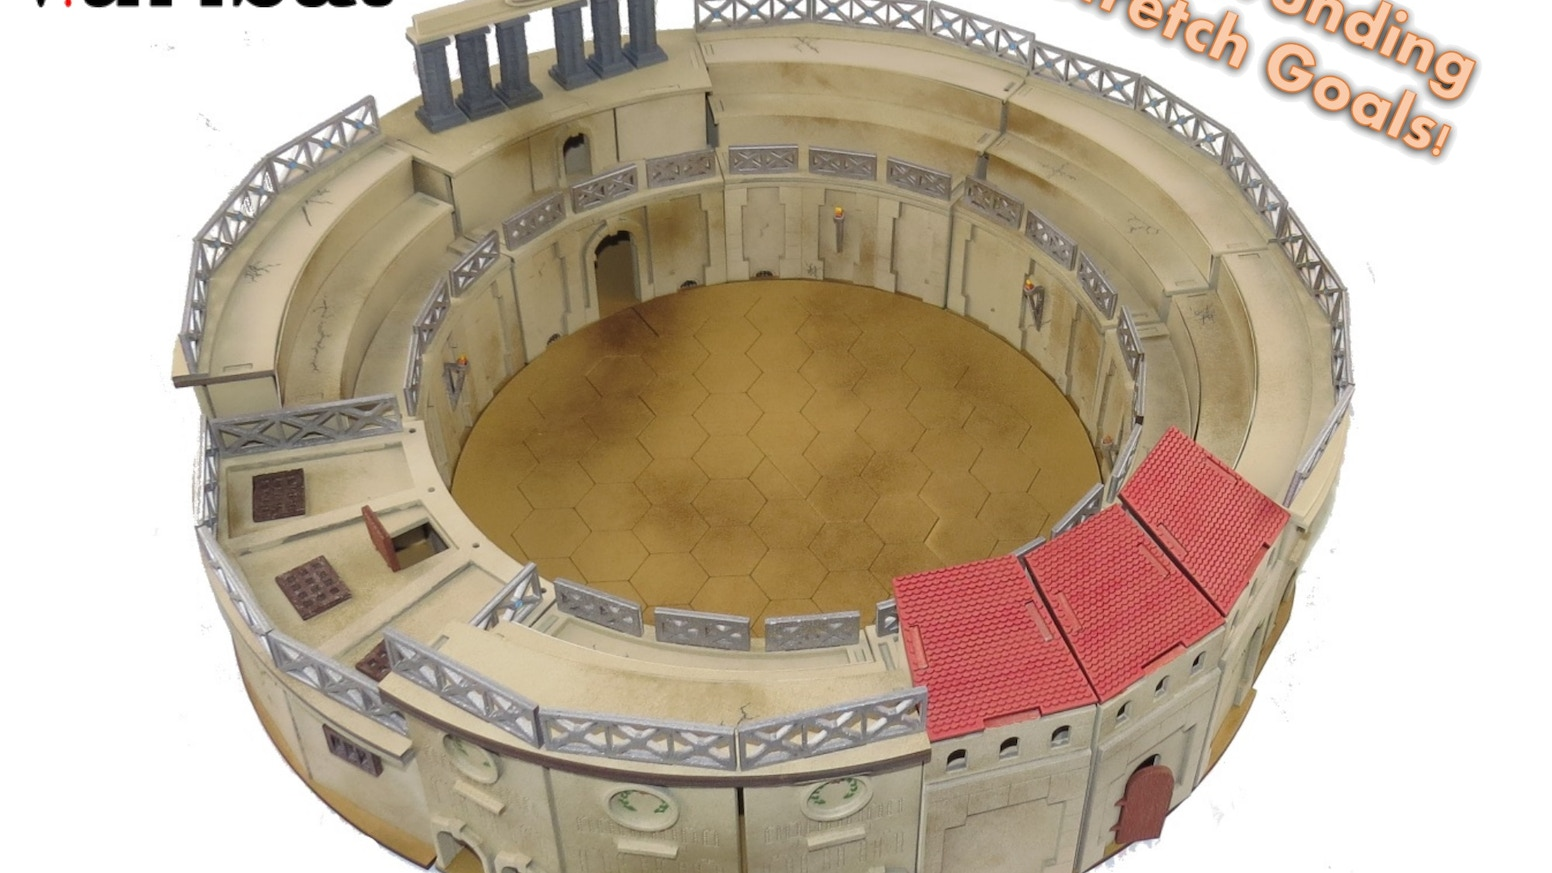 61059424a7d61 Help us make a modular 28mm scale gladiator arena and a range of  accessories which can be used for a variety of miniatures games.